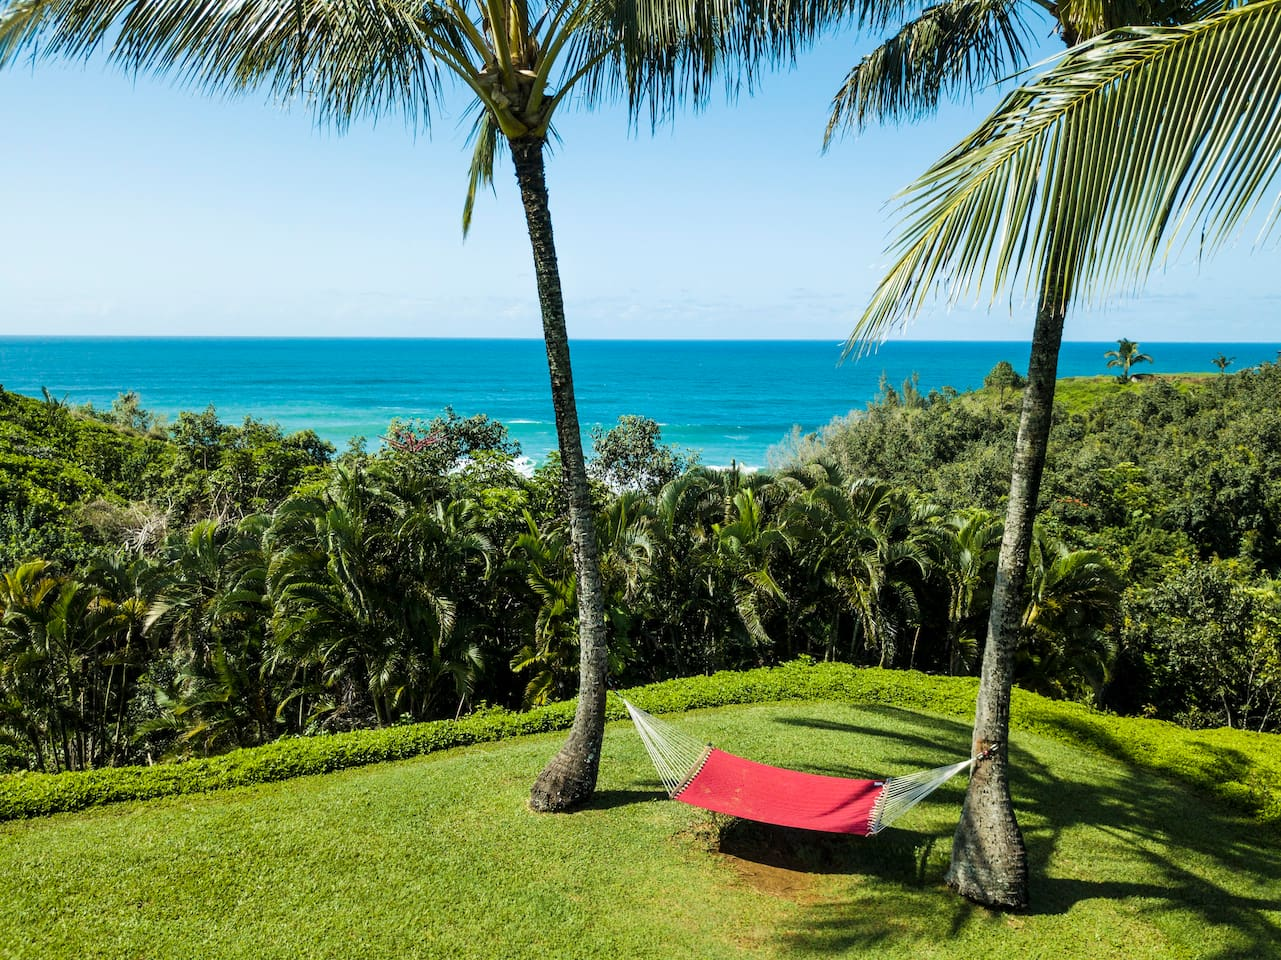 Majestic views of Bali Hai and a relaxing hammock are just a few minutes walk through the condo complex away.